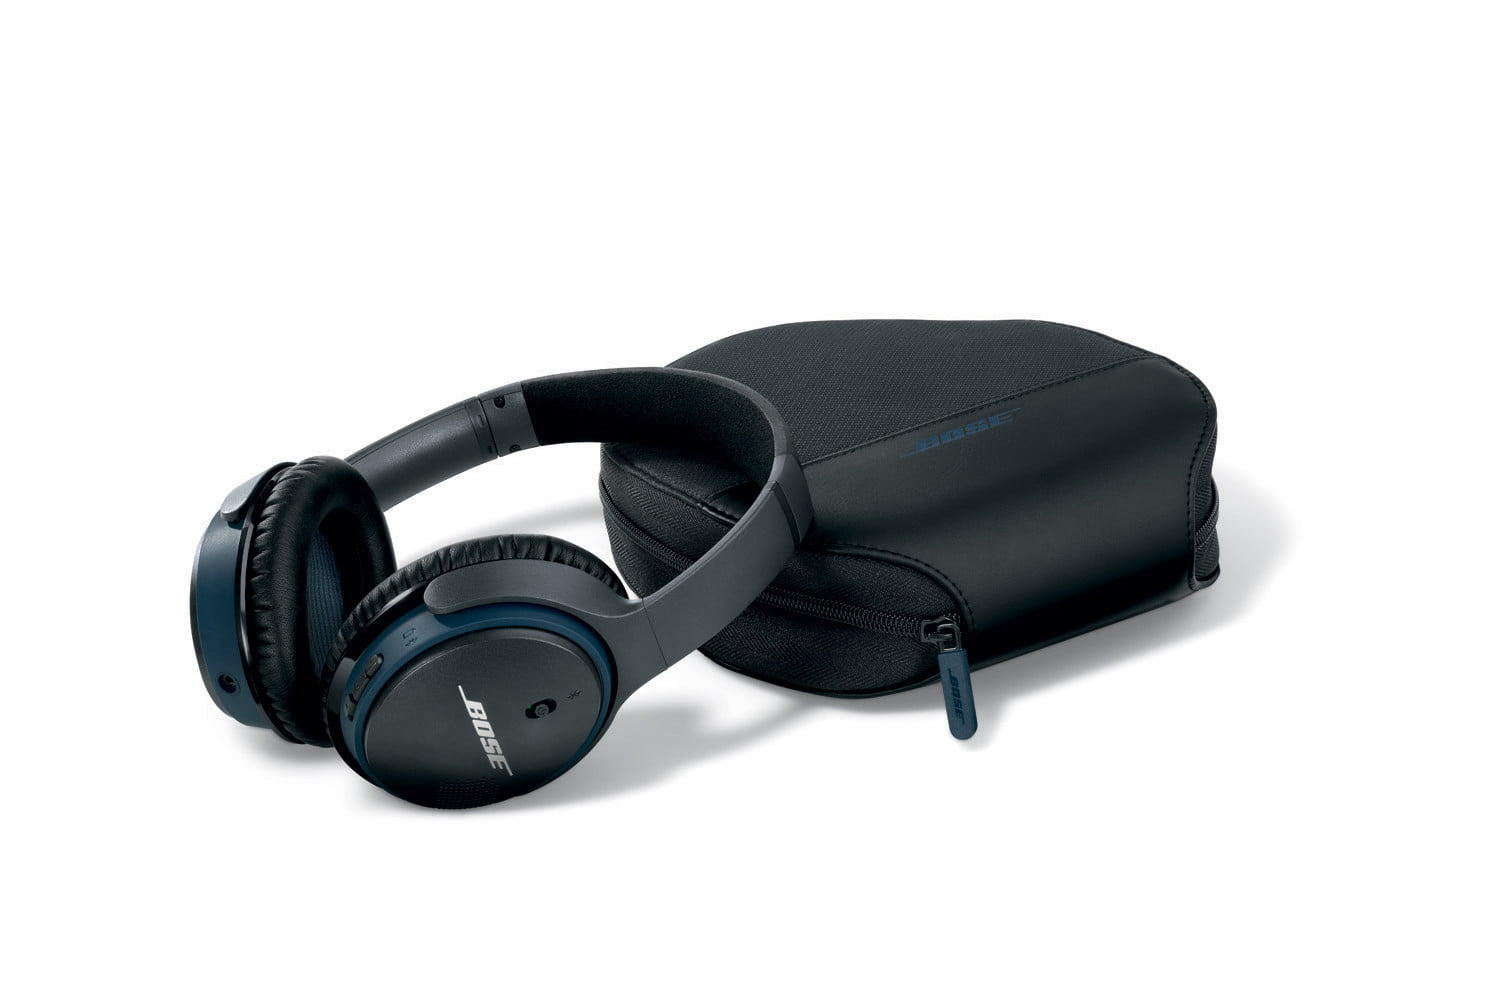 DefenderShield Anti EMF Radiation Air Tube Stereo Headphones / Earbuds With Microphone On Amazon